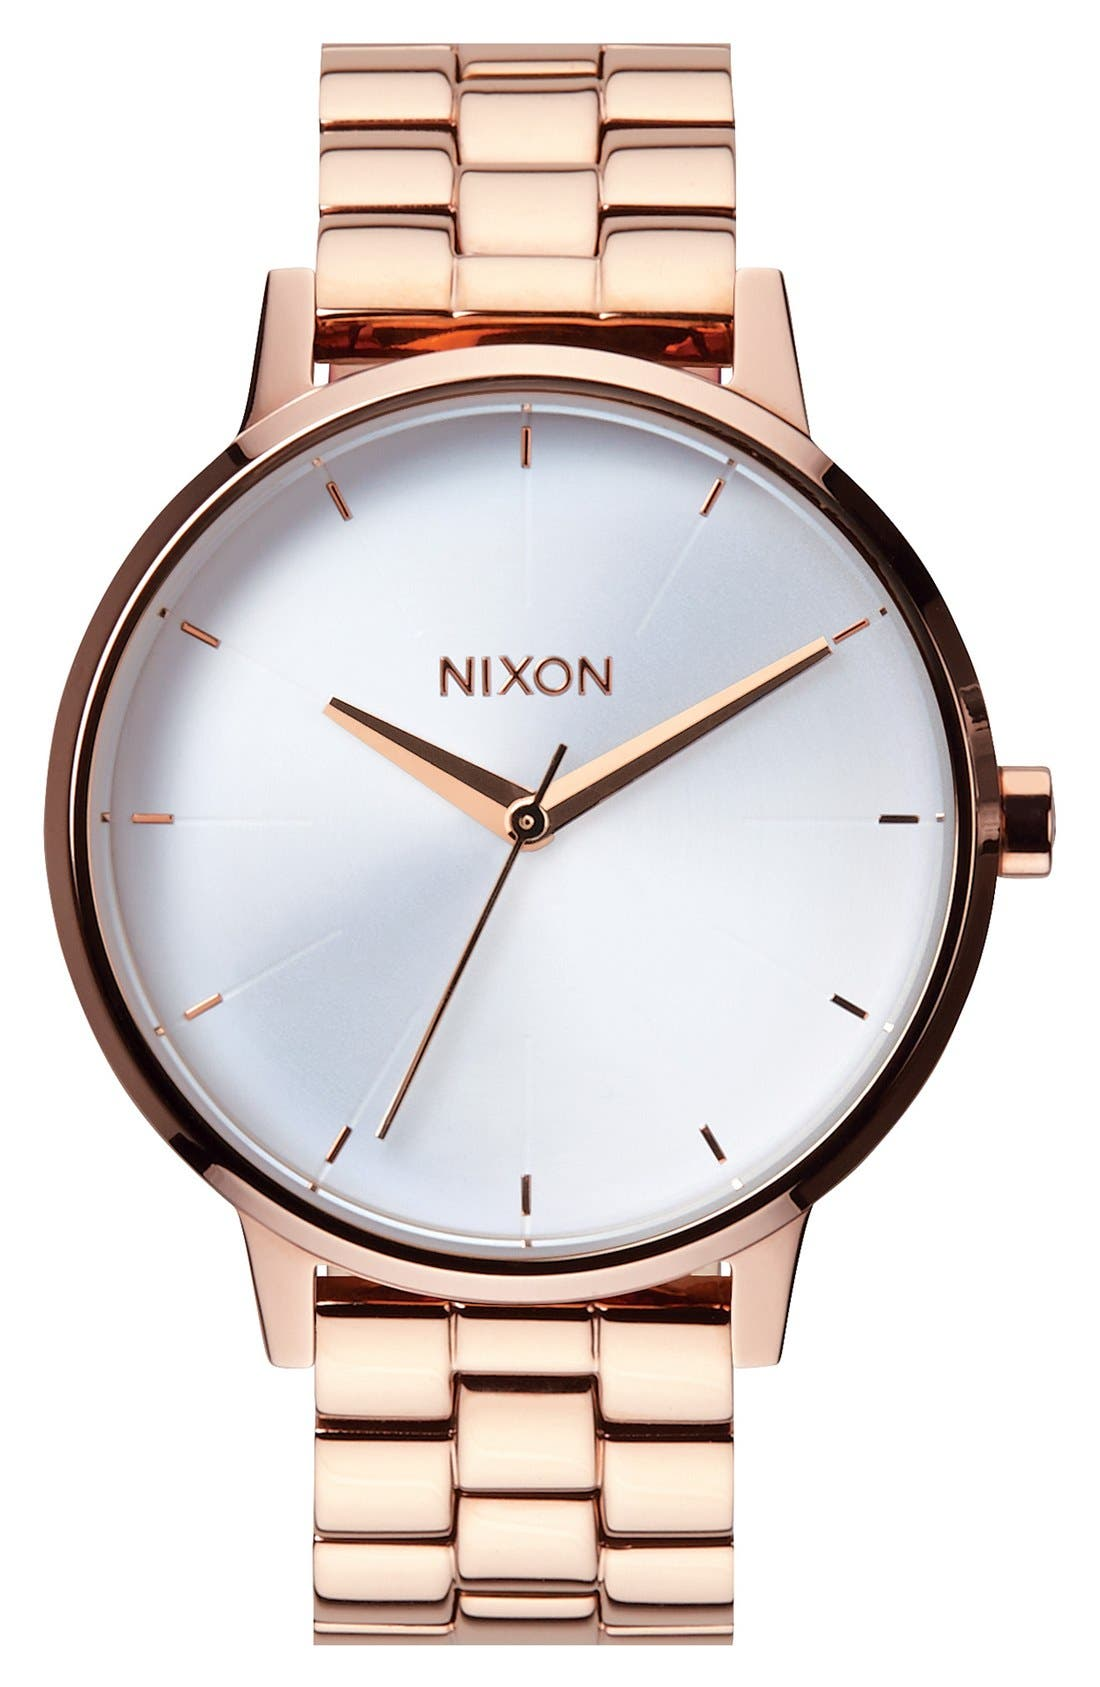 Main Image - Nixon 'The Kensington' Bracelet Watch, 37mm